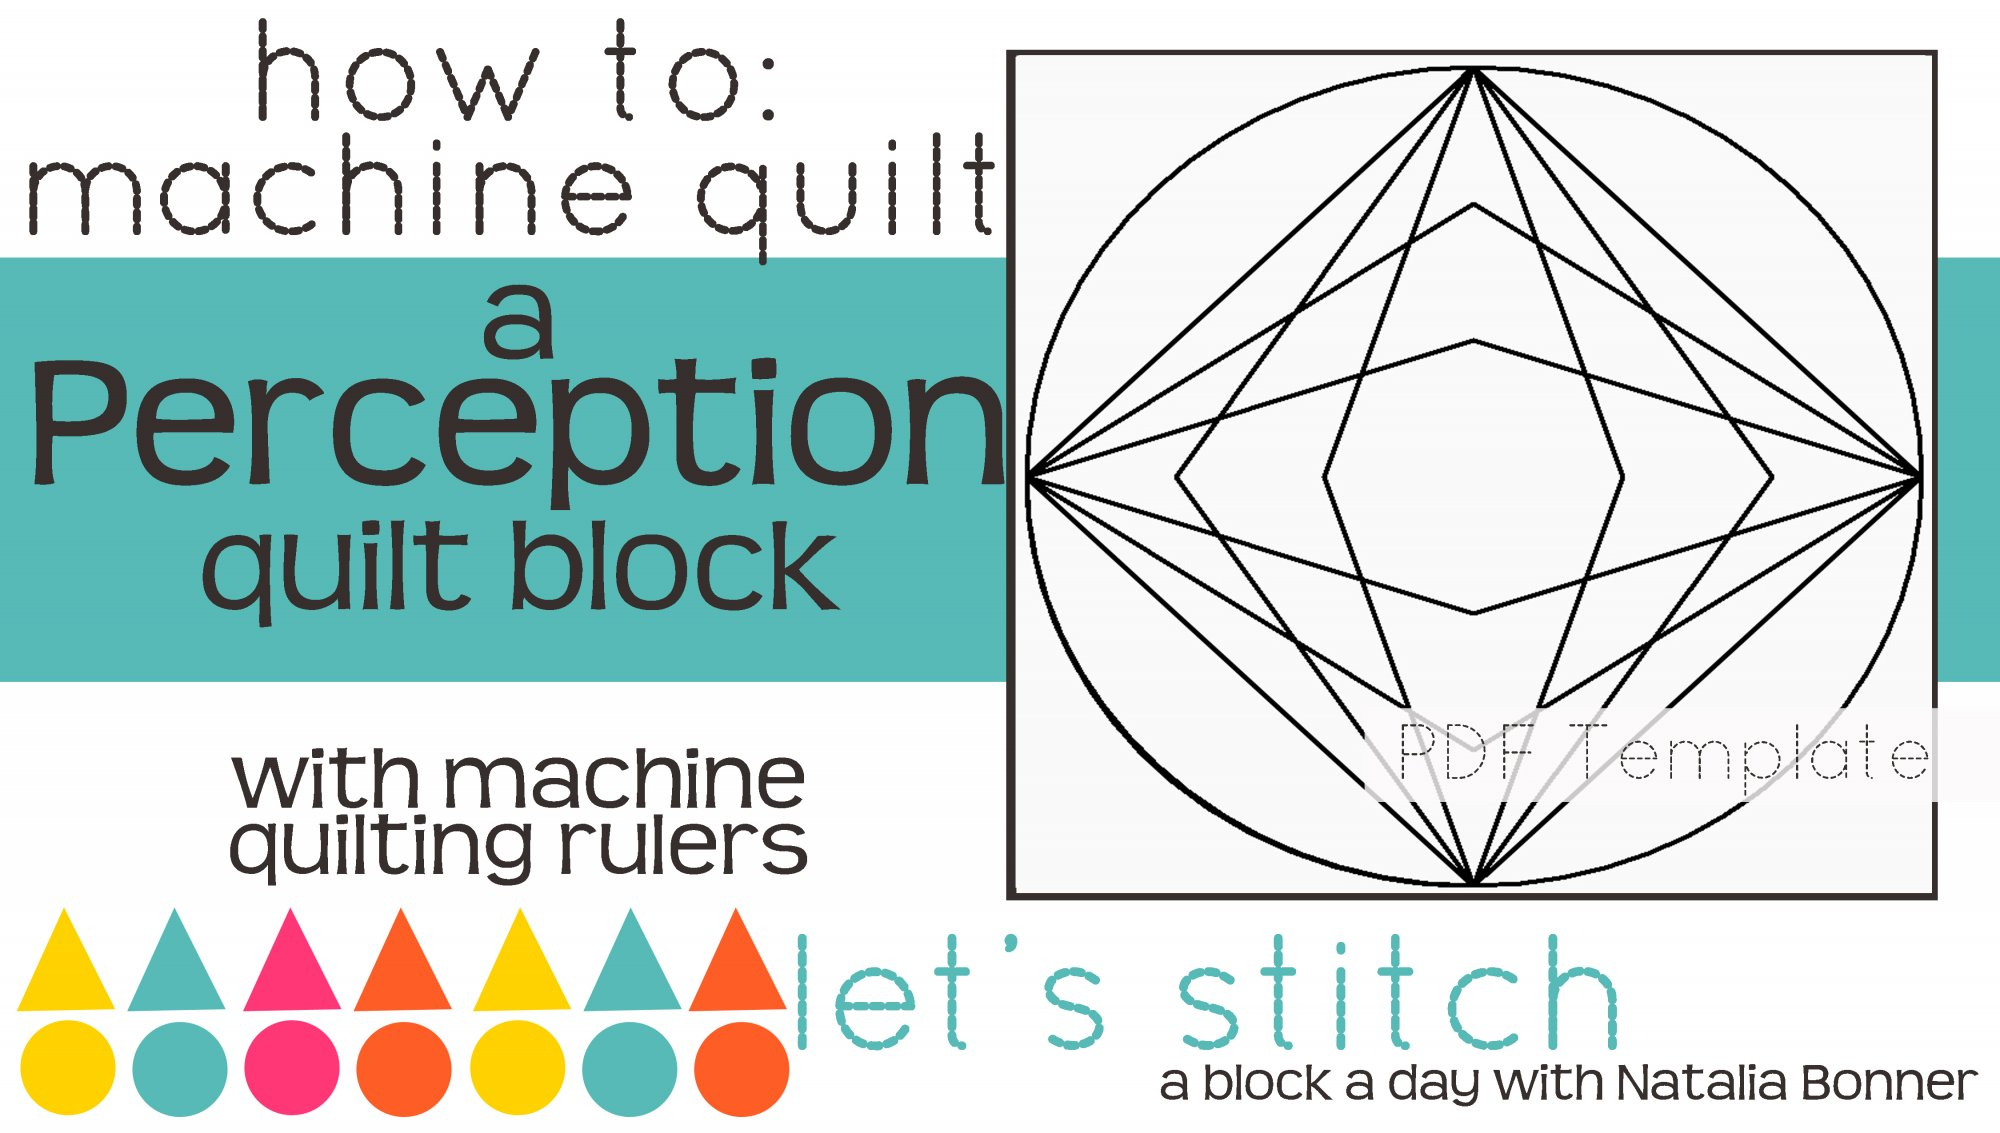 Let's Stitch - A Block a Day With Natalia Bonner - PDF - Perception